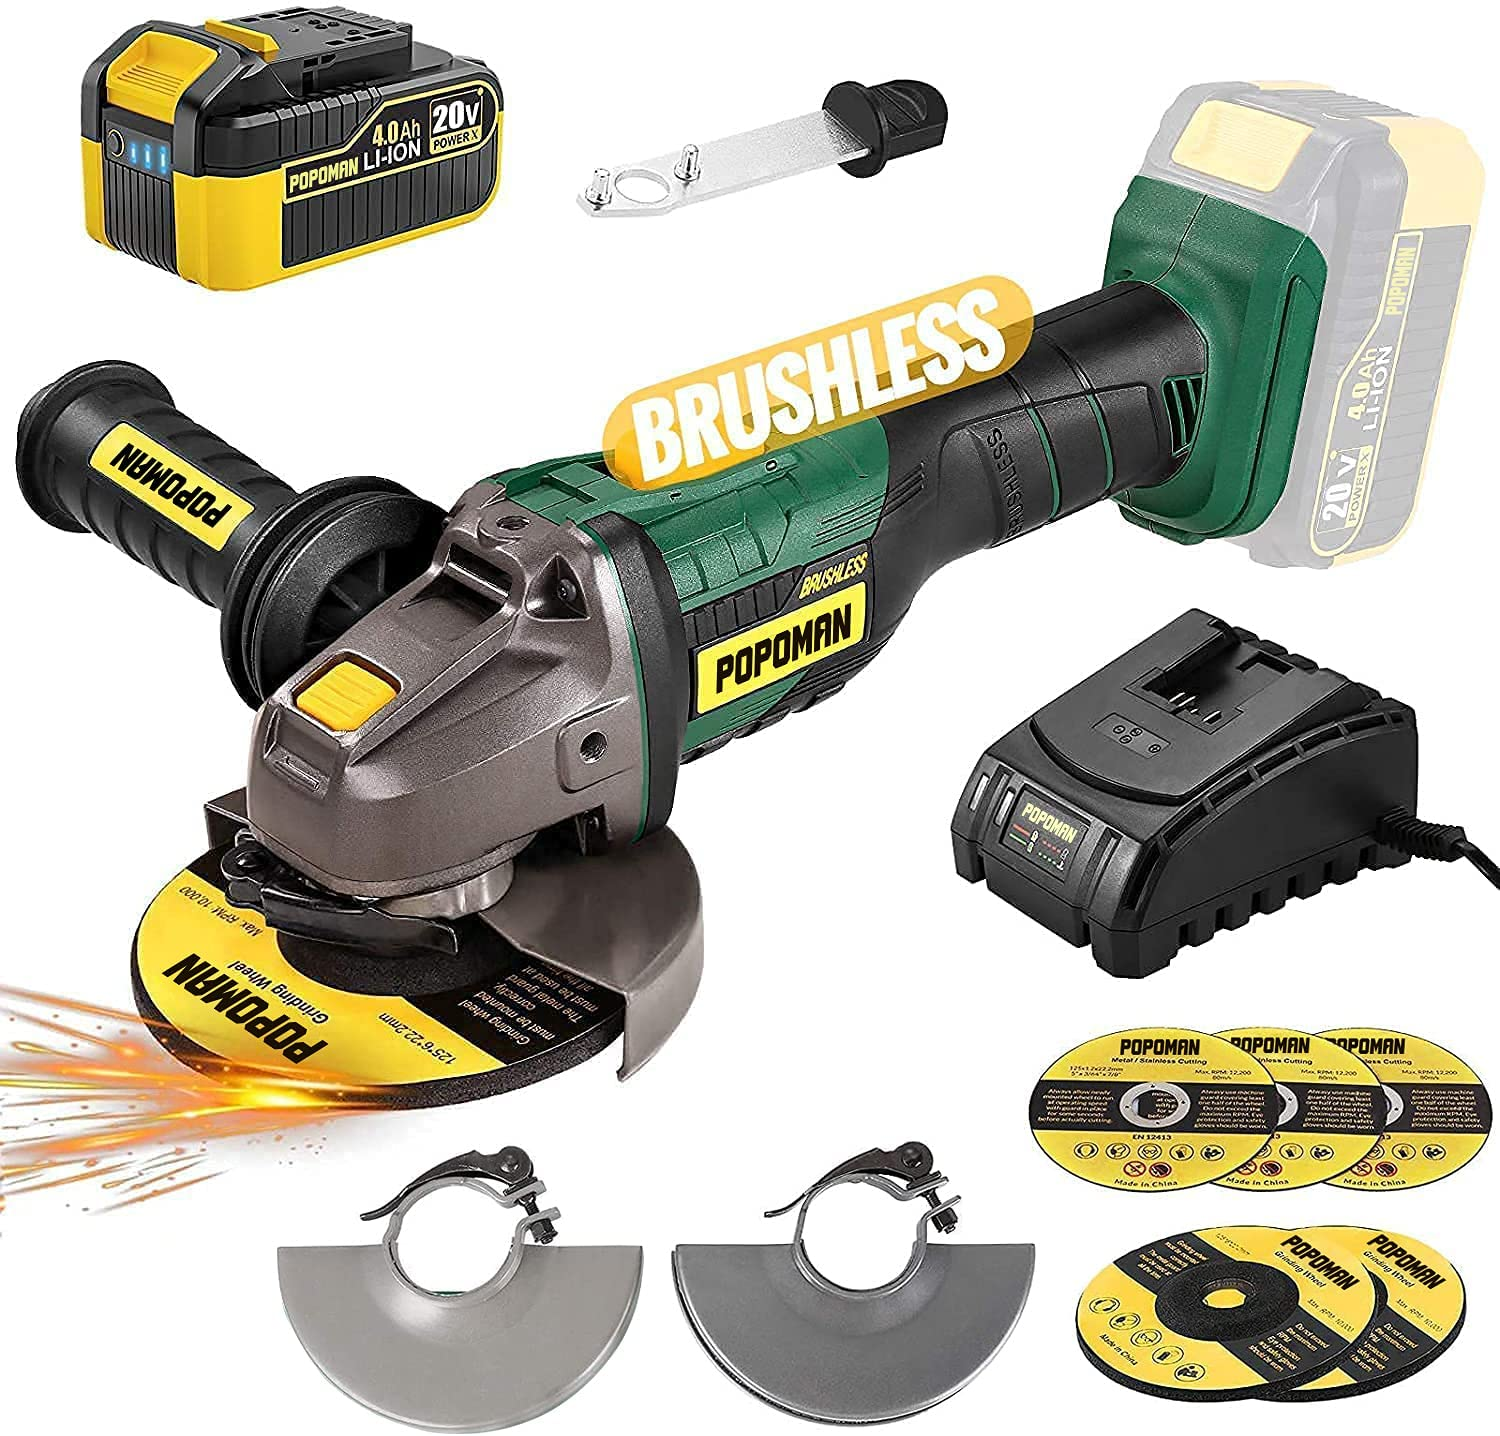 Brushless Cordless Angle Grinder 20V Max, Popoman 5 Inch 10000Rpm Cordless Grinder With 4.0Ah Lithium-Ion Battery &Amp; Fast Charger, 3-Position Auxiliary Handle, Cutting Wheel&Amp;Grinding Wheel Included